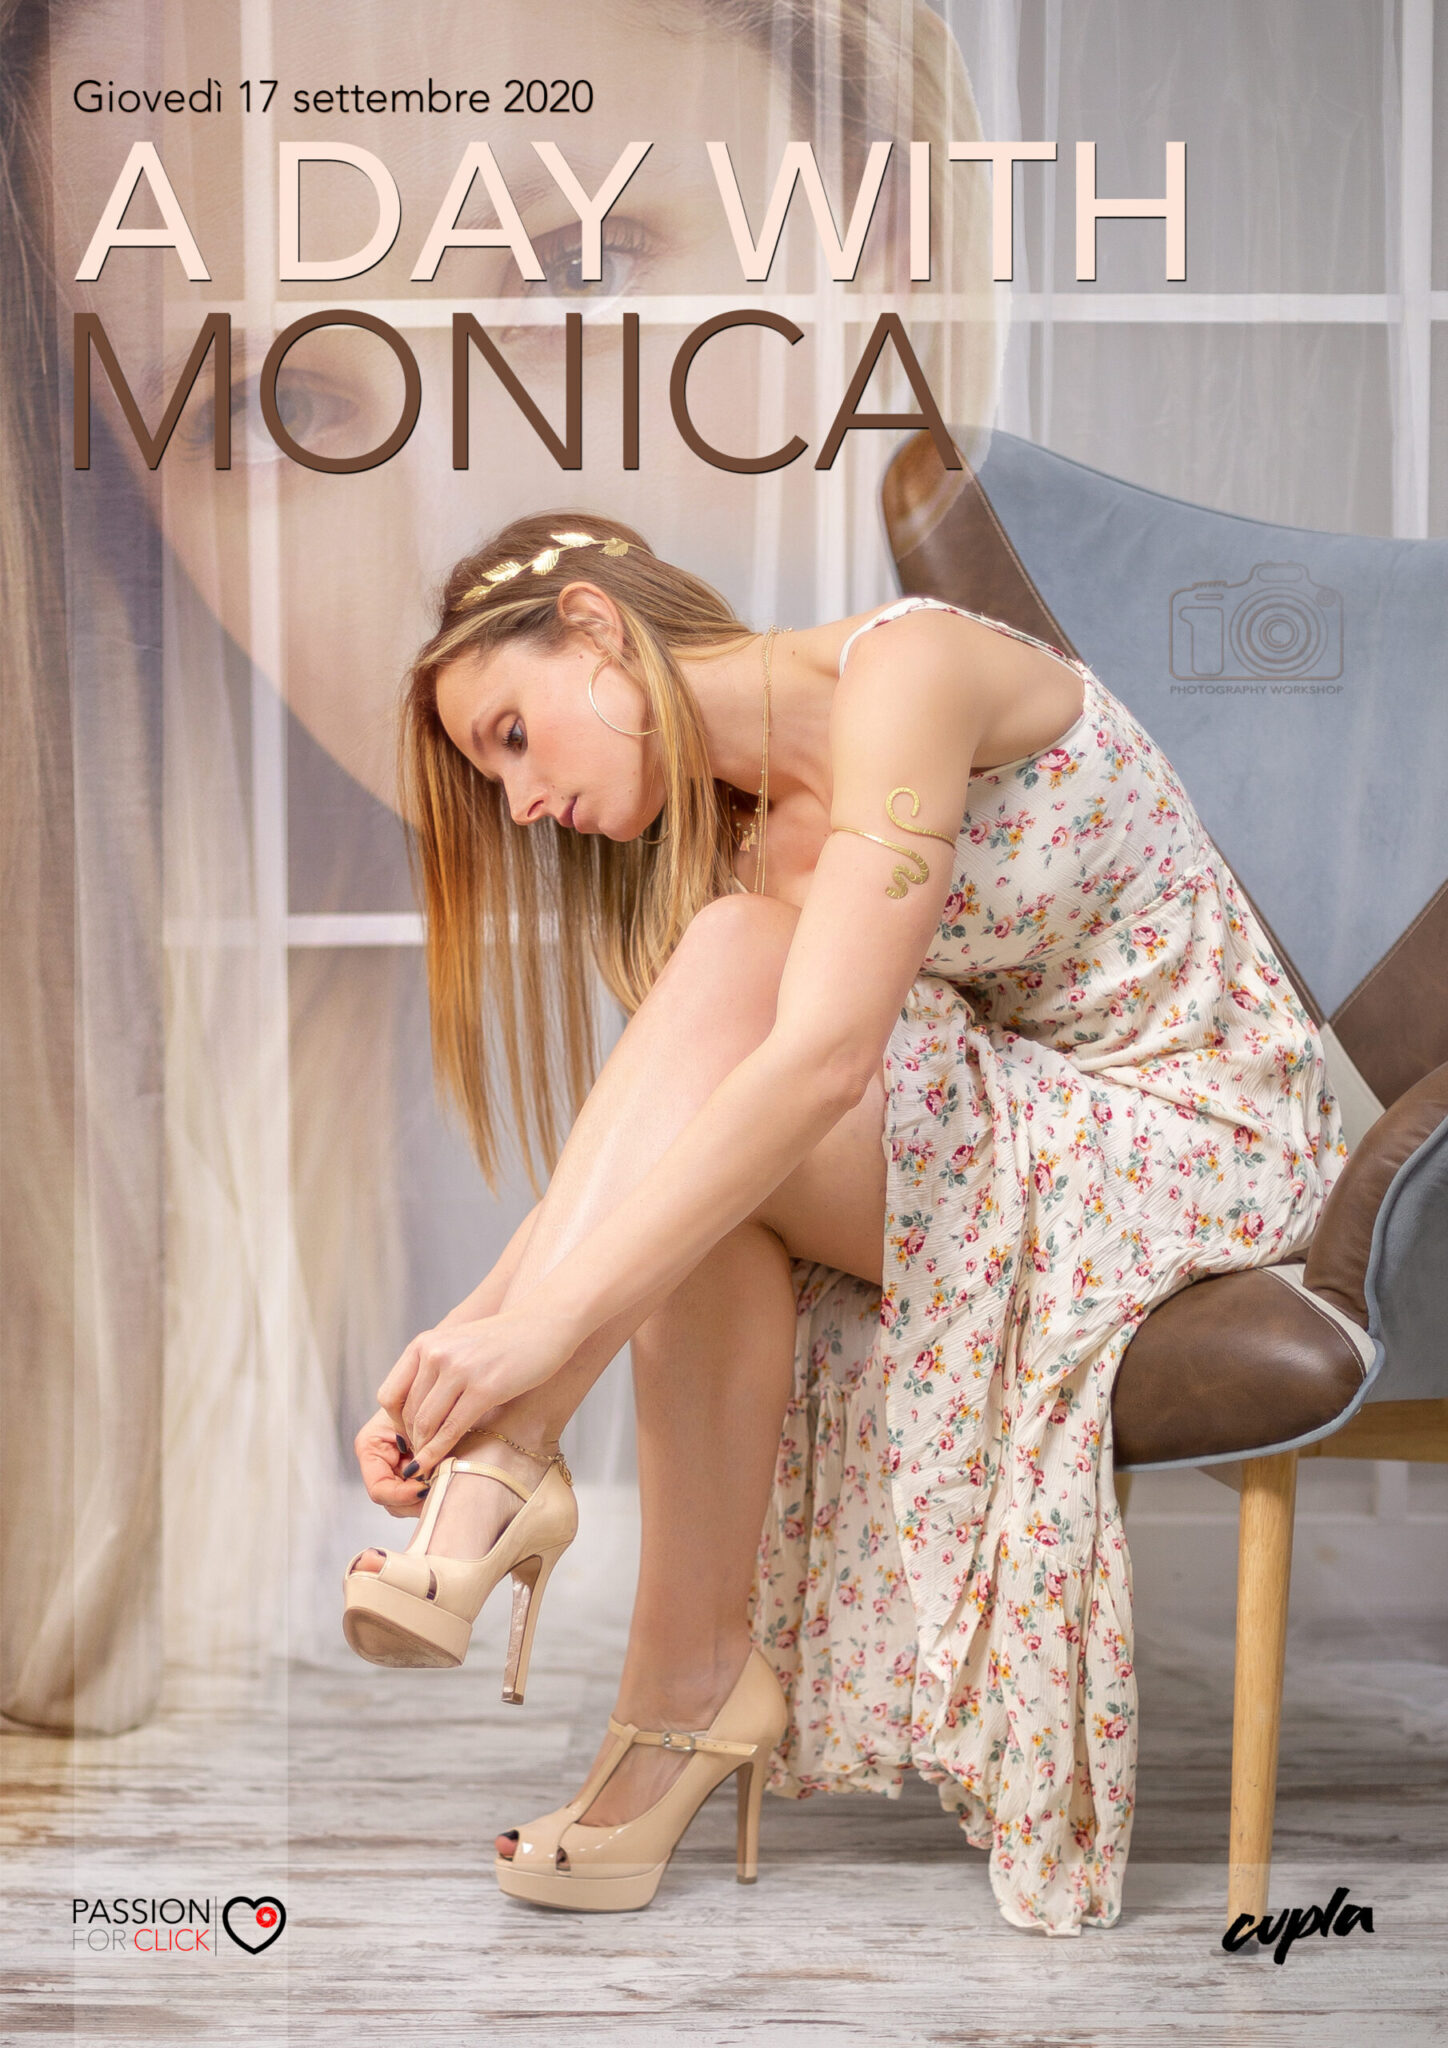 A day with Monica